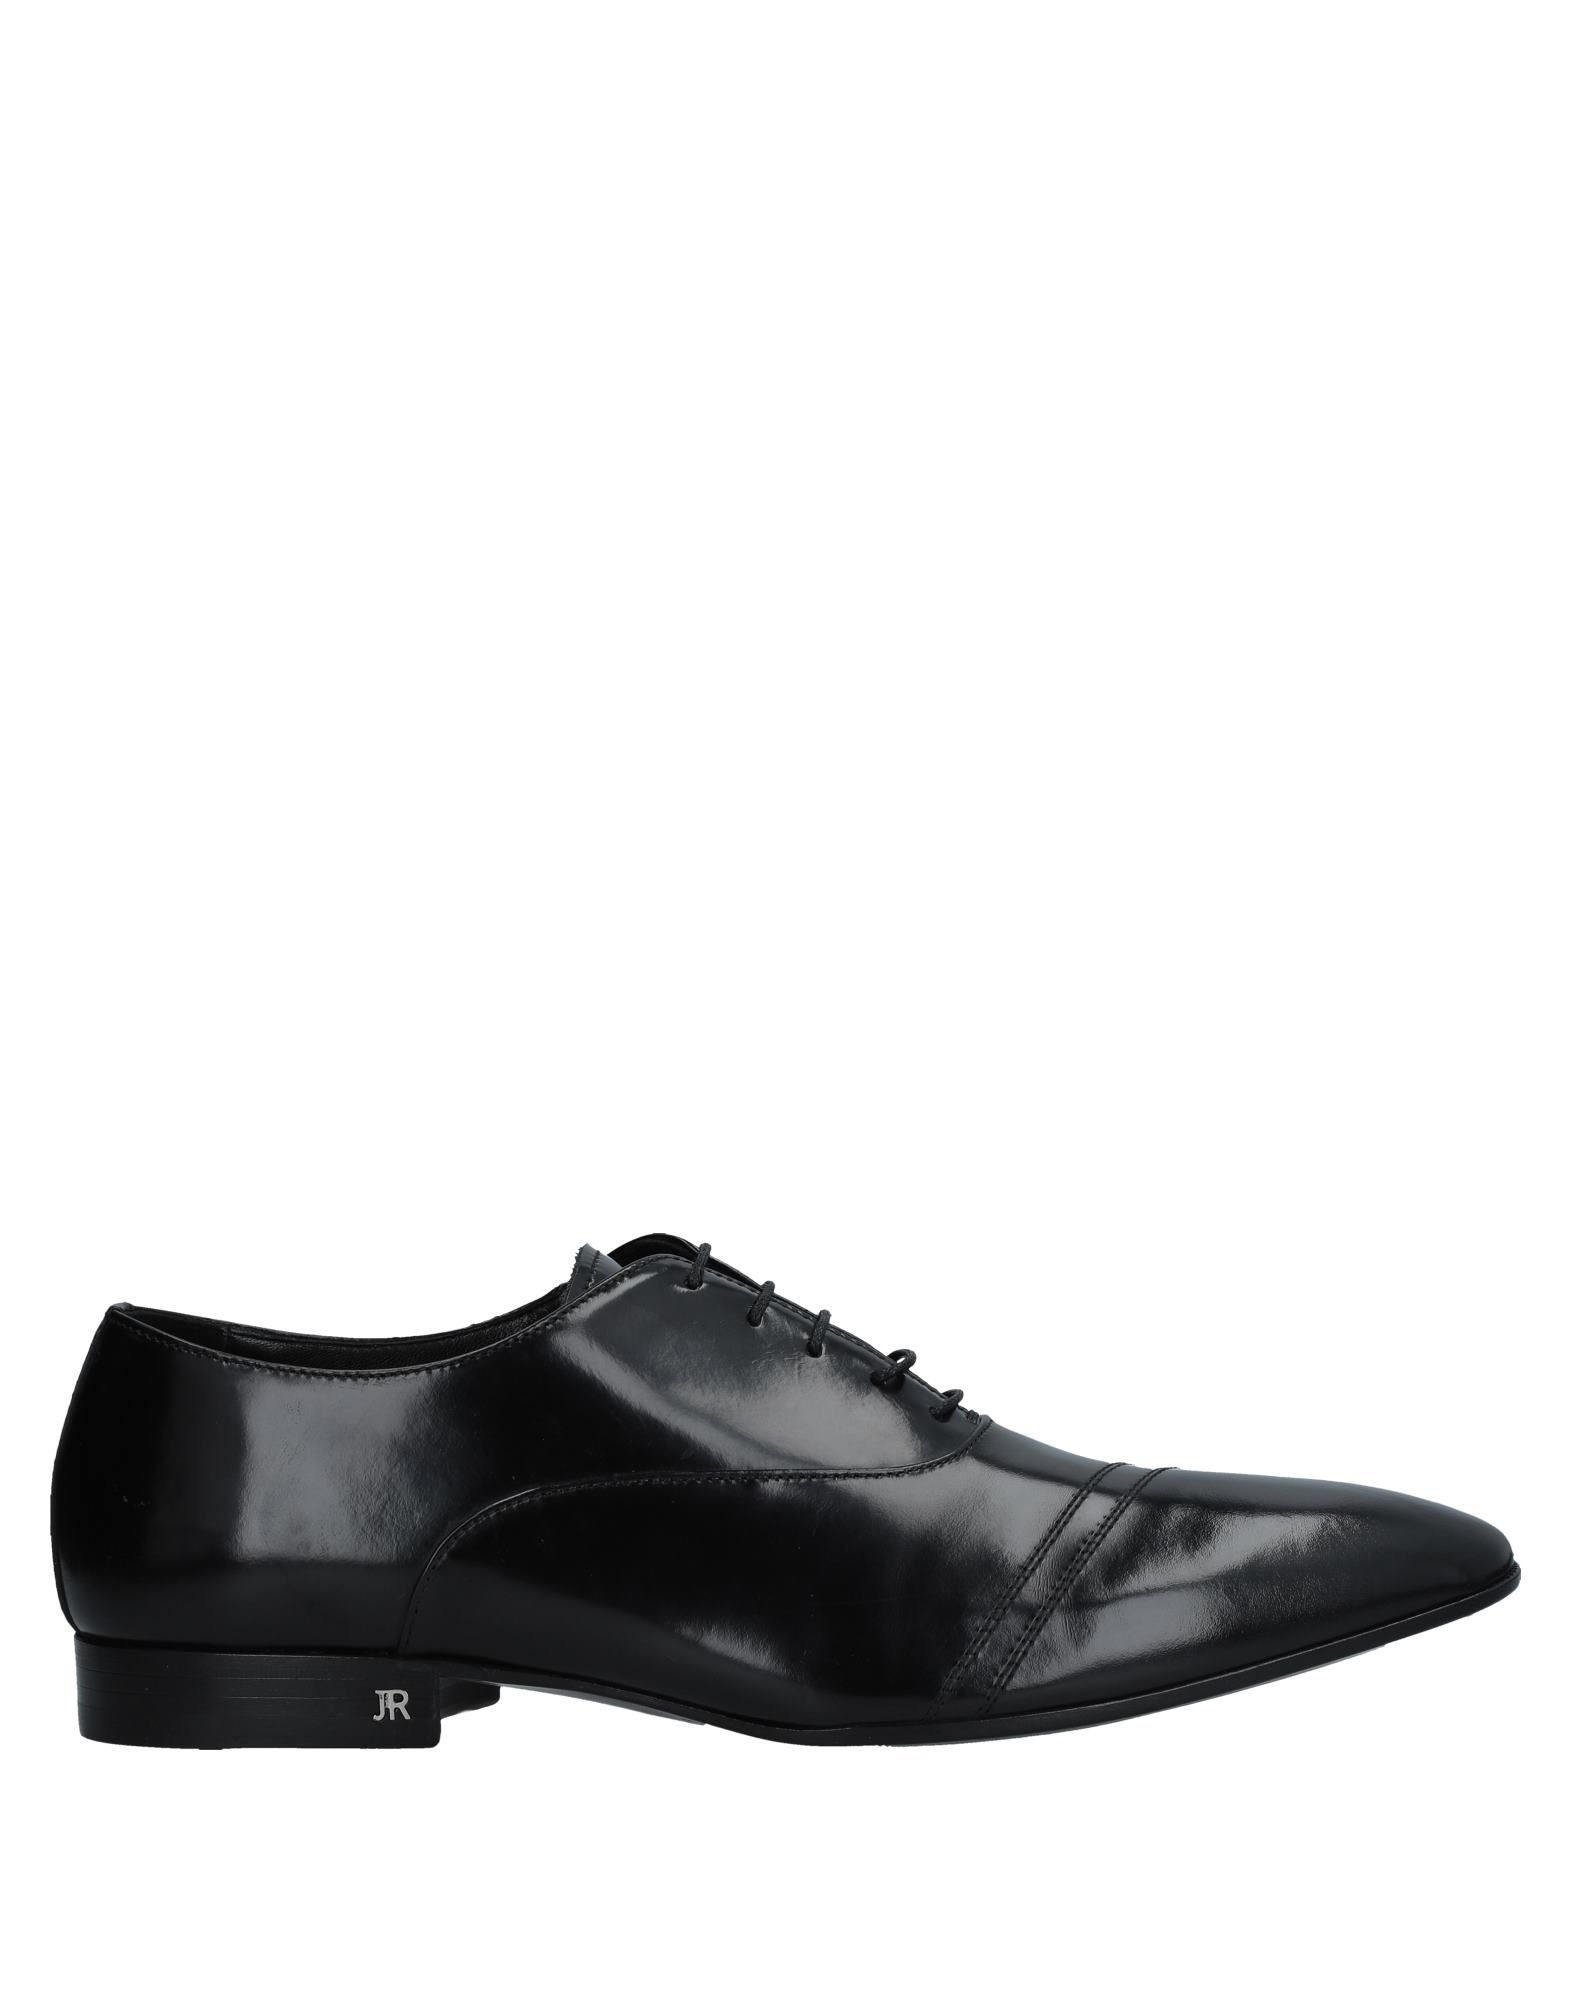 John Richmond Richmond John Schnürschuhe Herren  11523250FJ b054c2